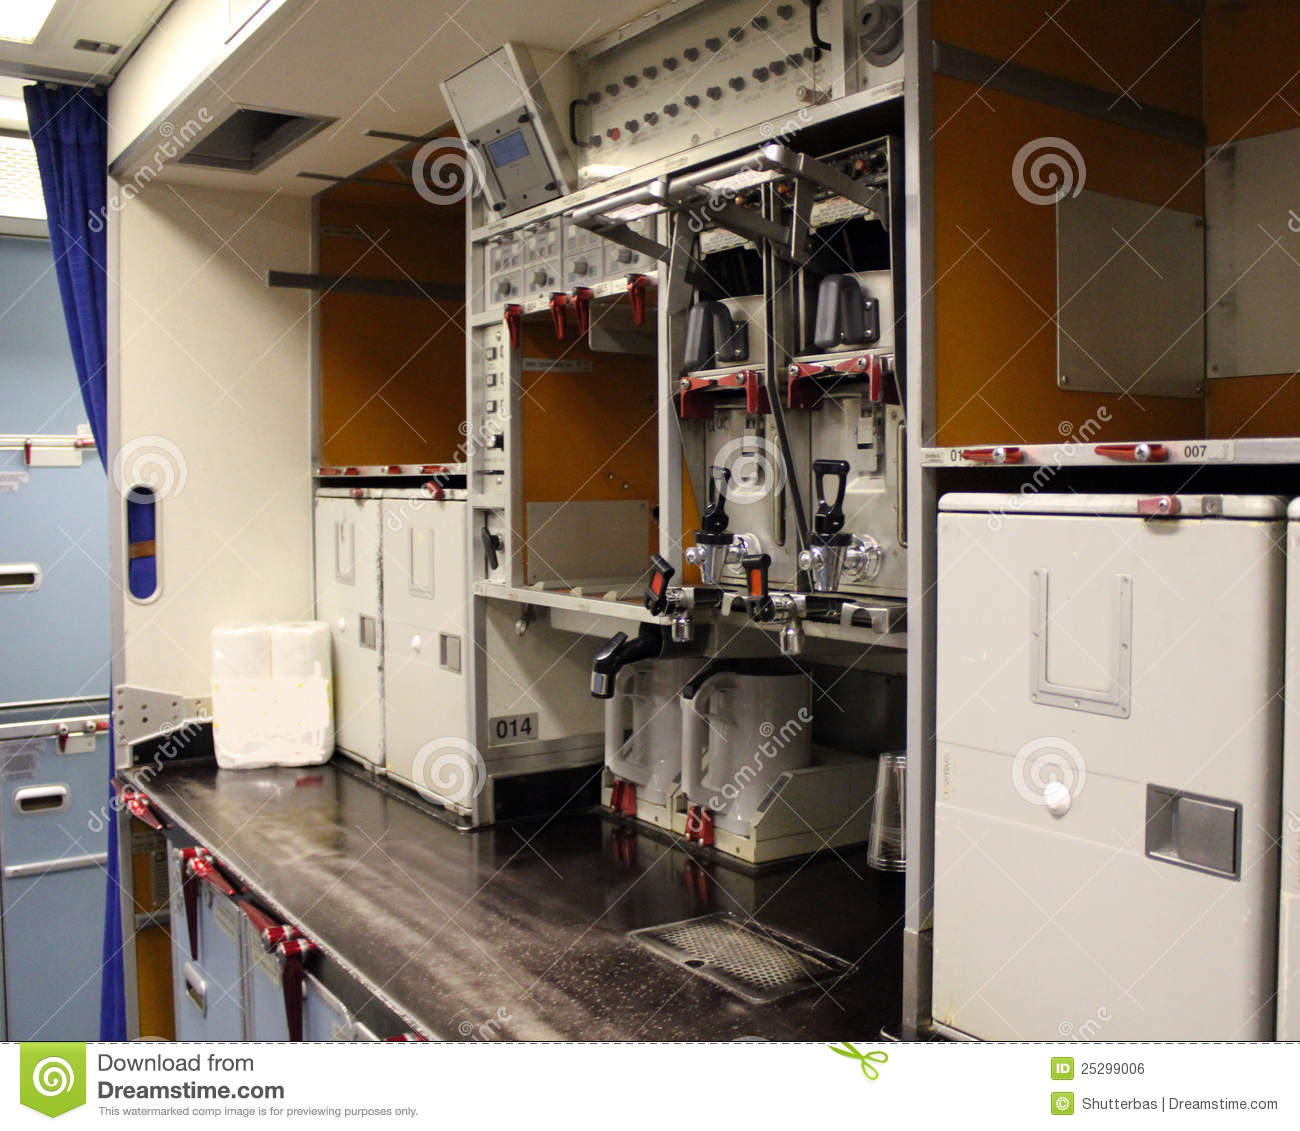 galley in aircraft aircraft galley stock photo image of empty economy 387